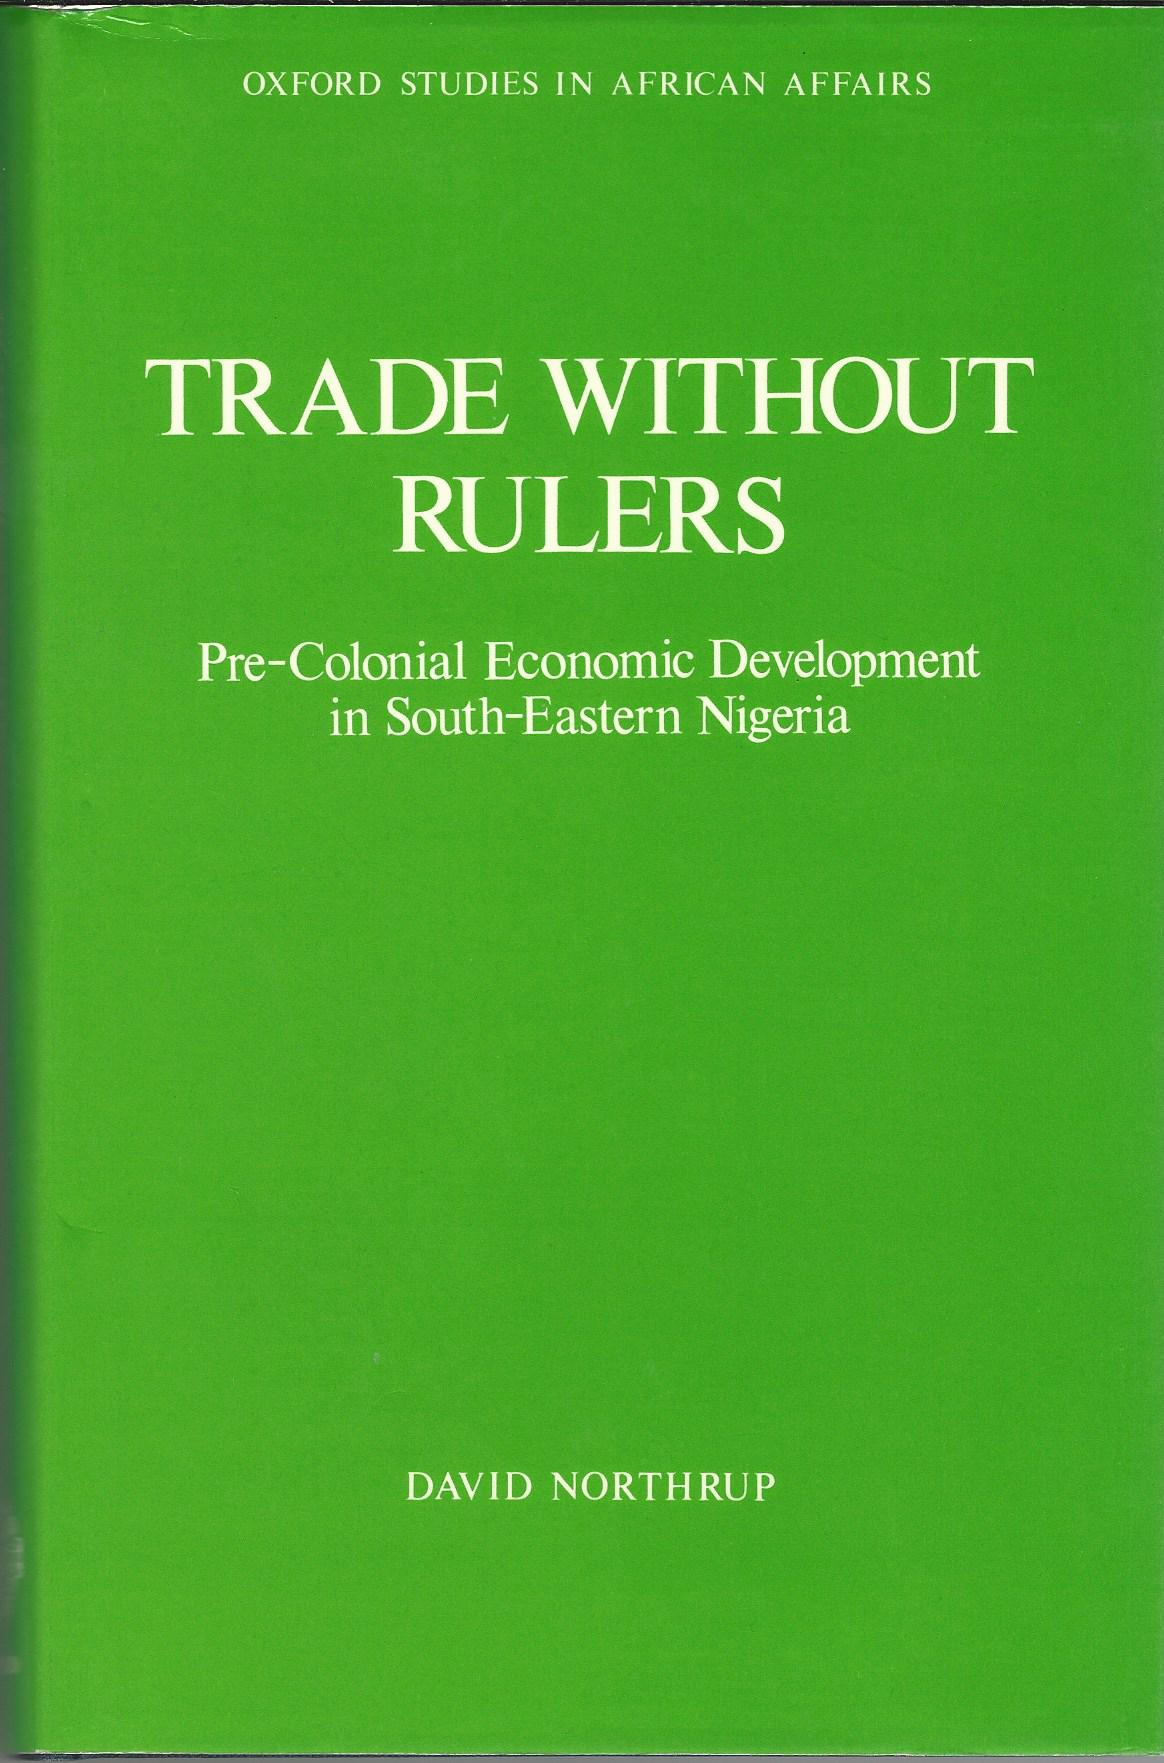 Image for Trade Without Rulers: Pre-Colonial Economic Development in South-Eastern Nigeria.